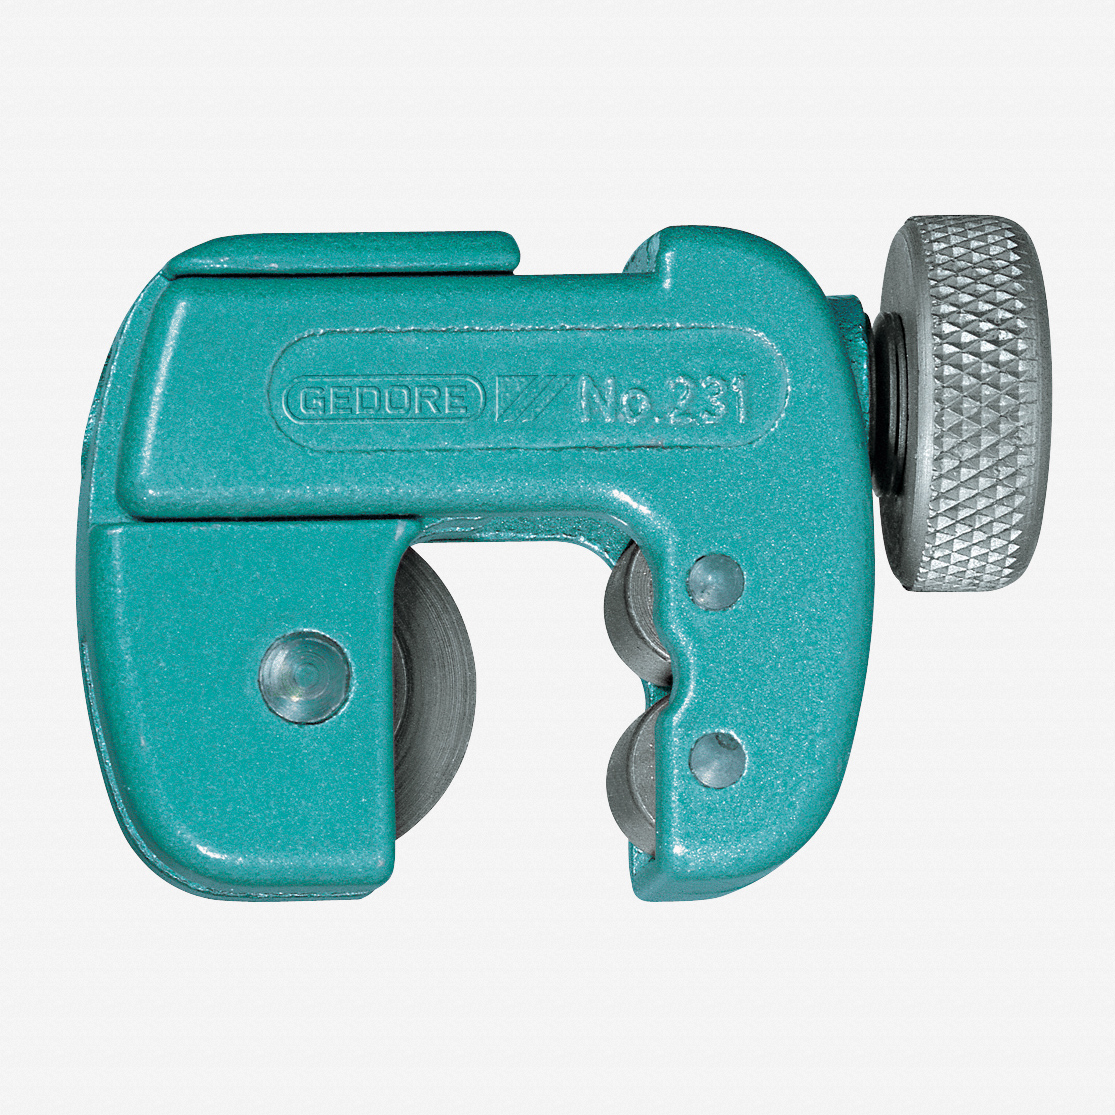 Gedore 231000 Pipe cutter MINI-QUICK, 4-16 mm - KC Tool